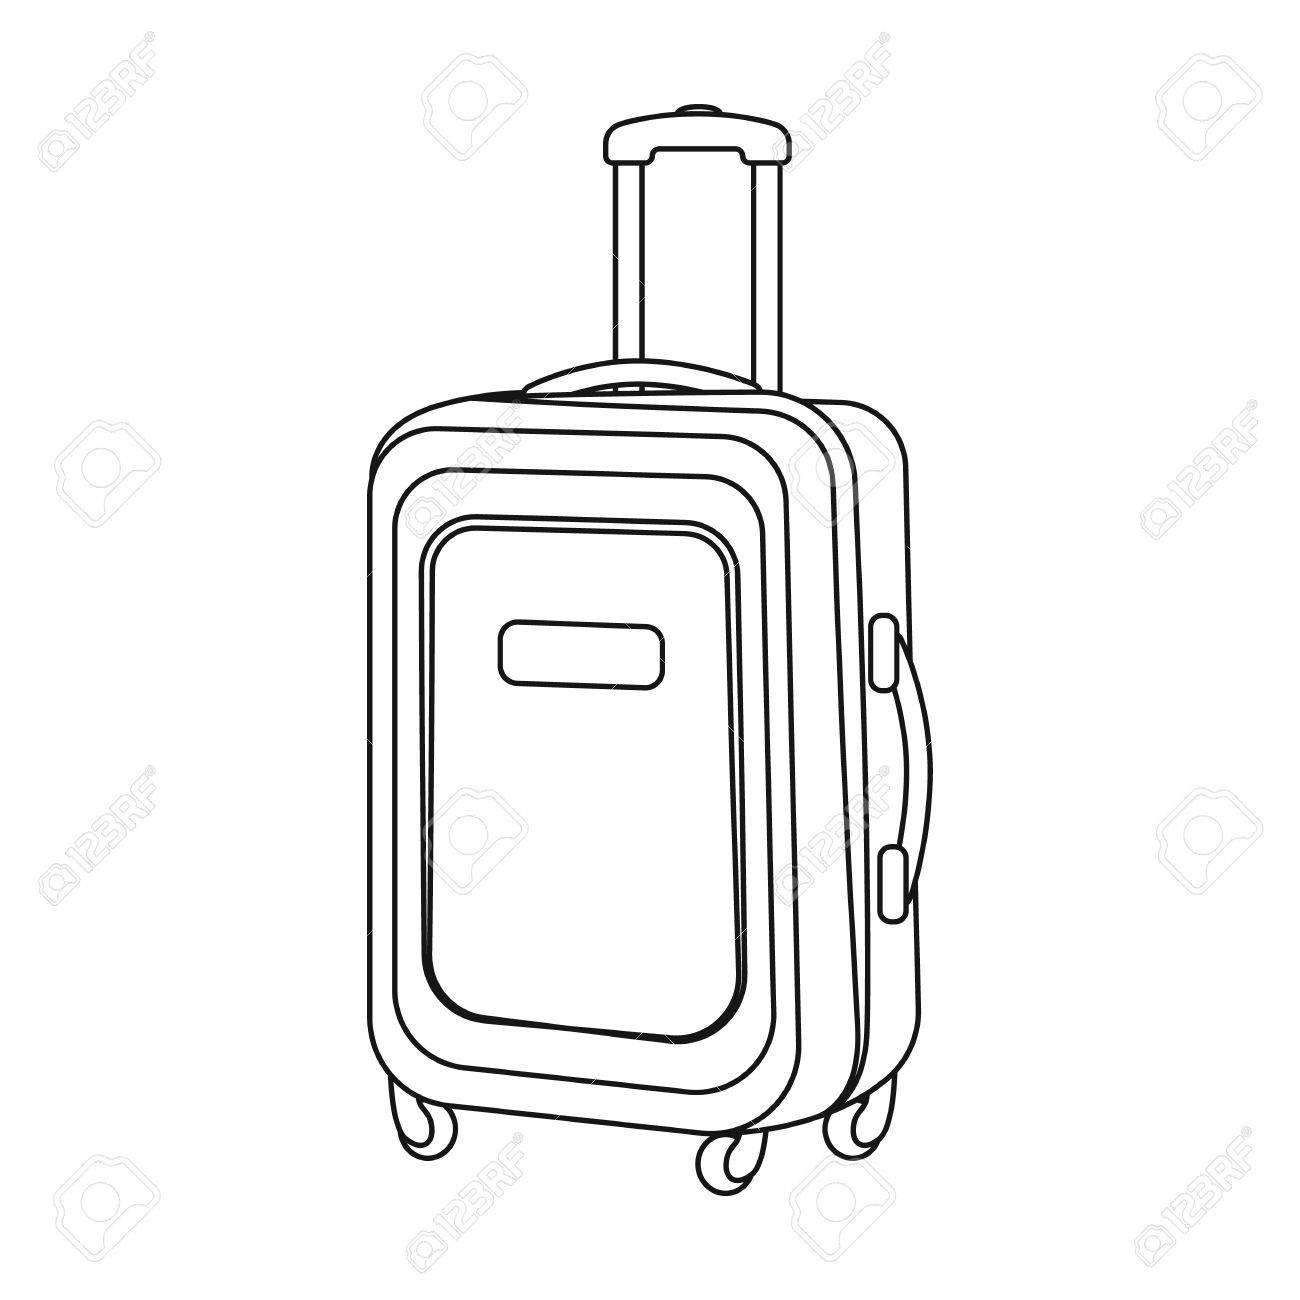 Travel Luggage Icon In Outline Style Isolated On White Background Rest And Symbol Stock